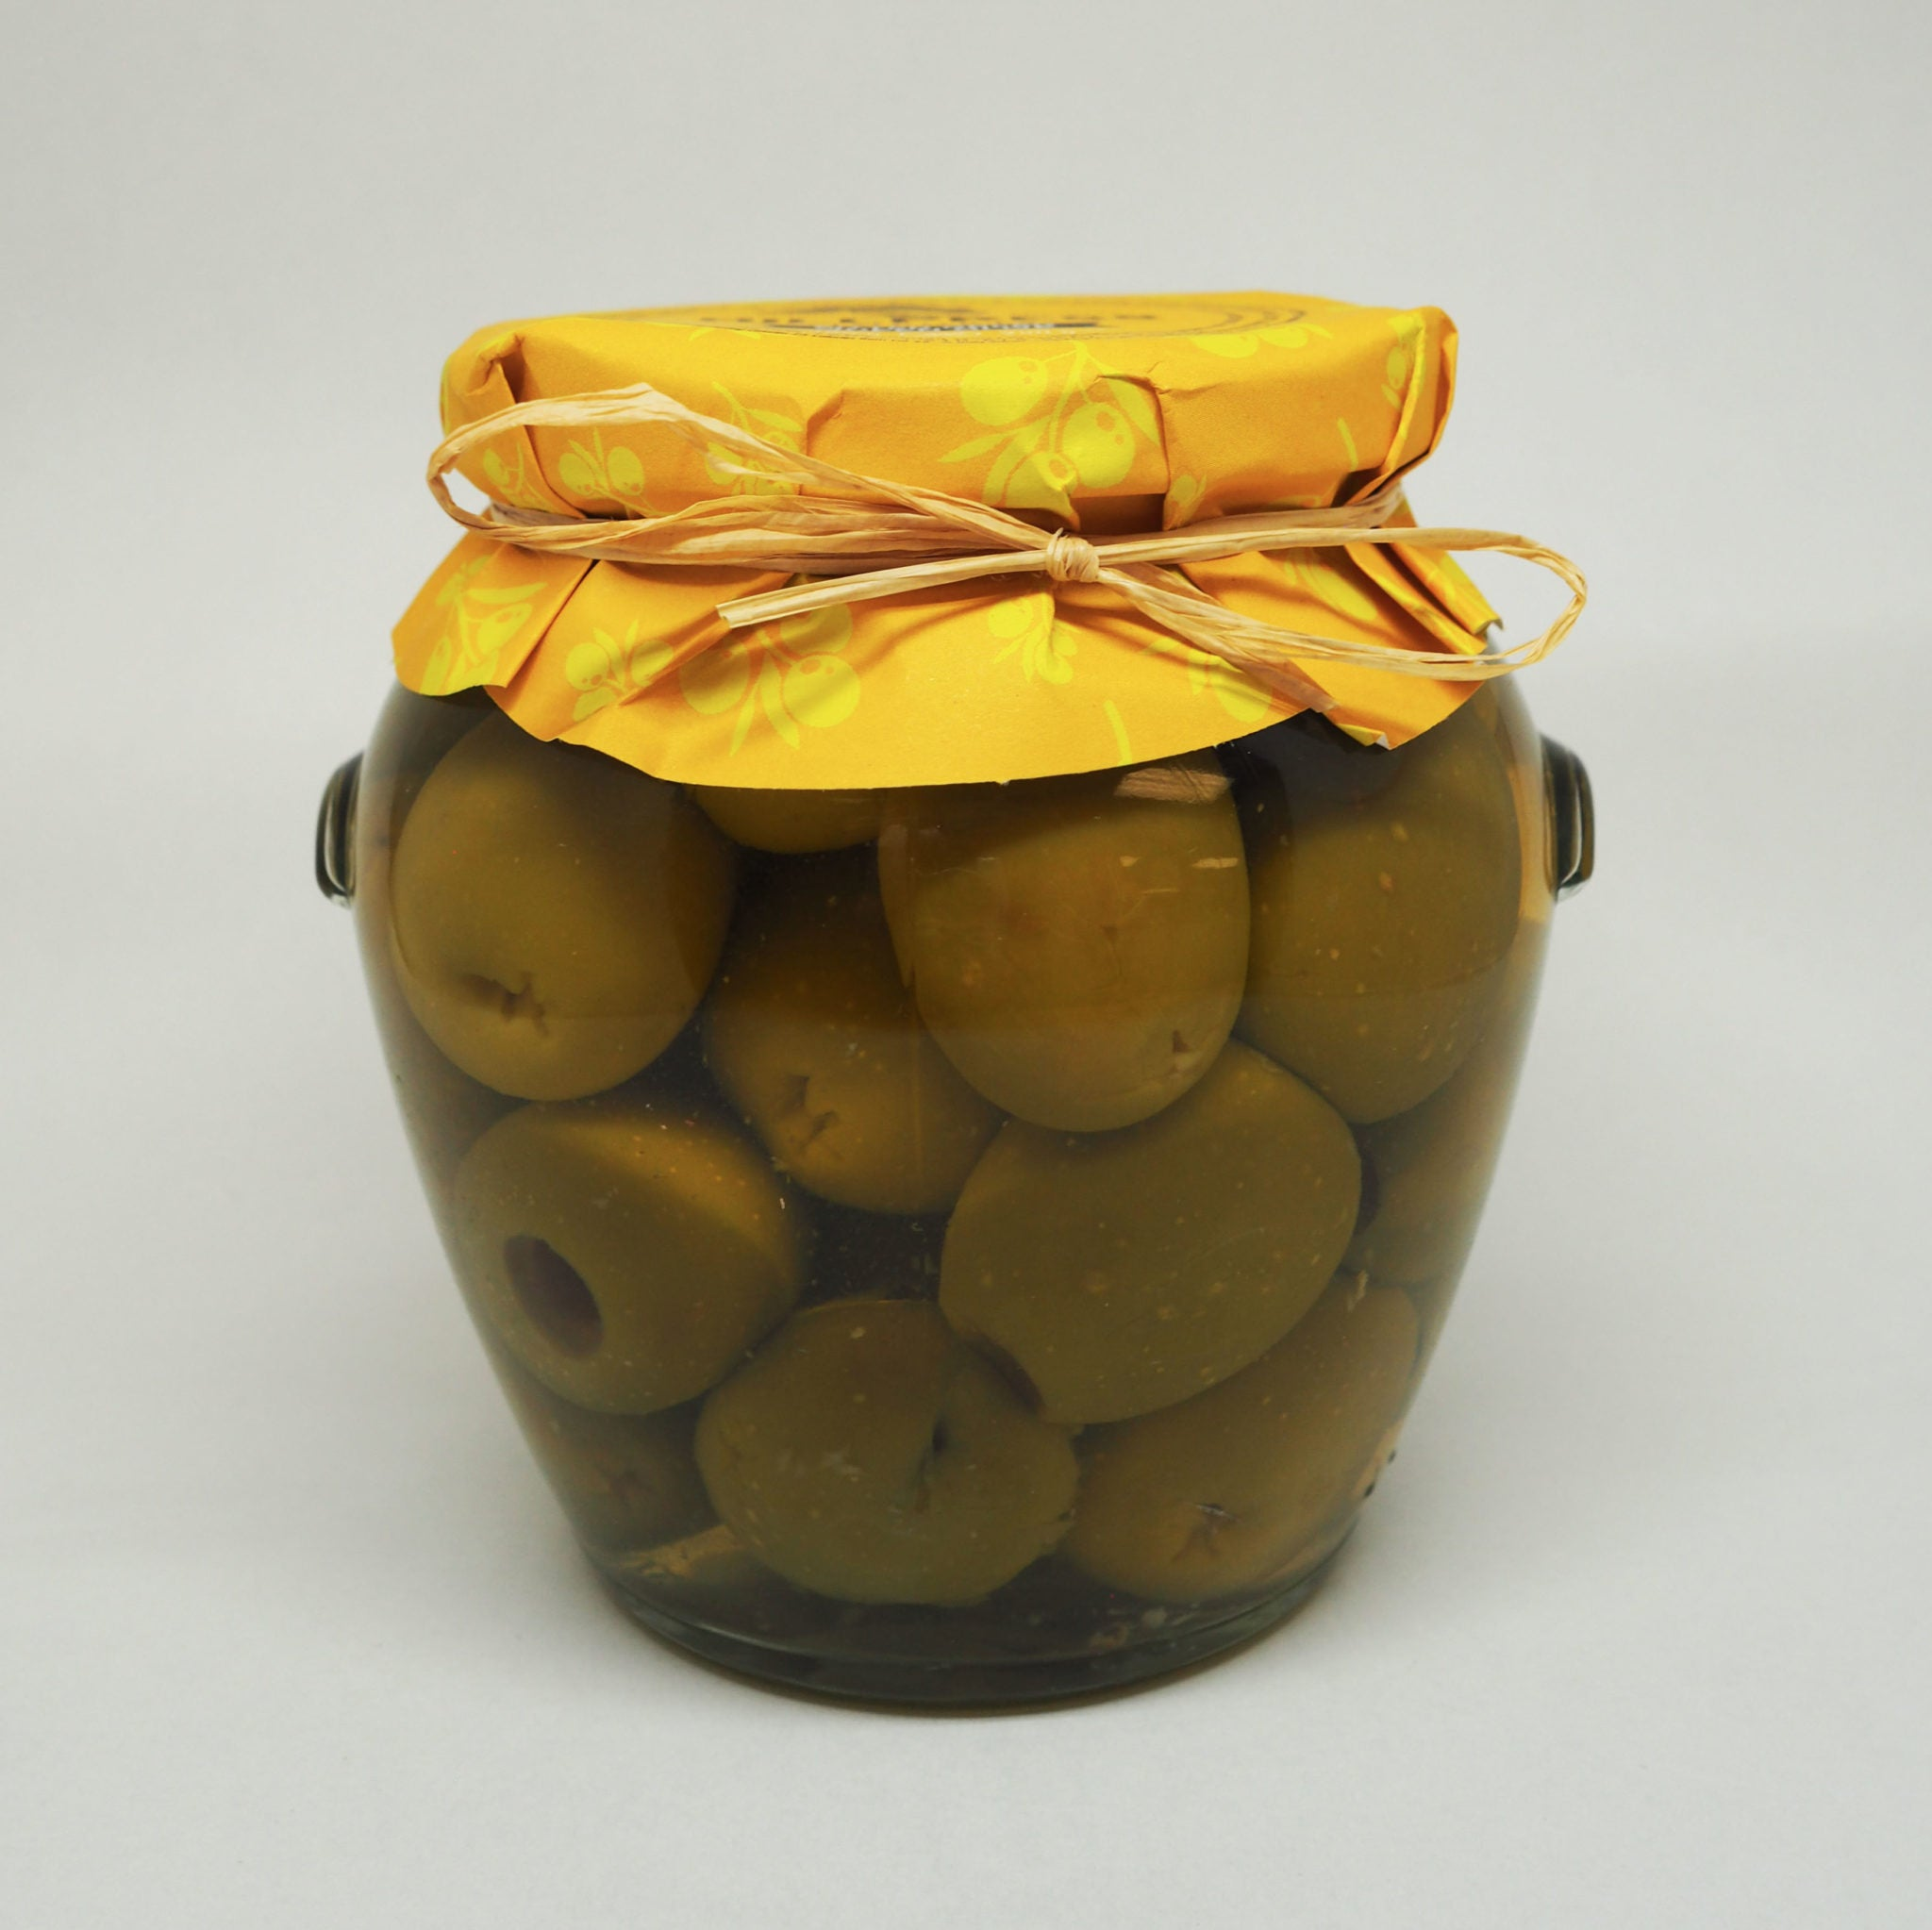 Olives - Large Pitted Green Queen Olives